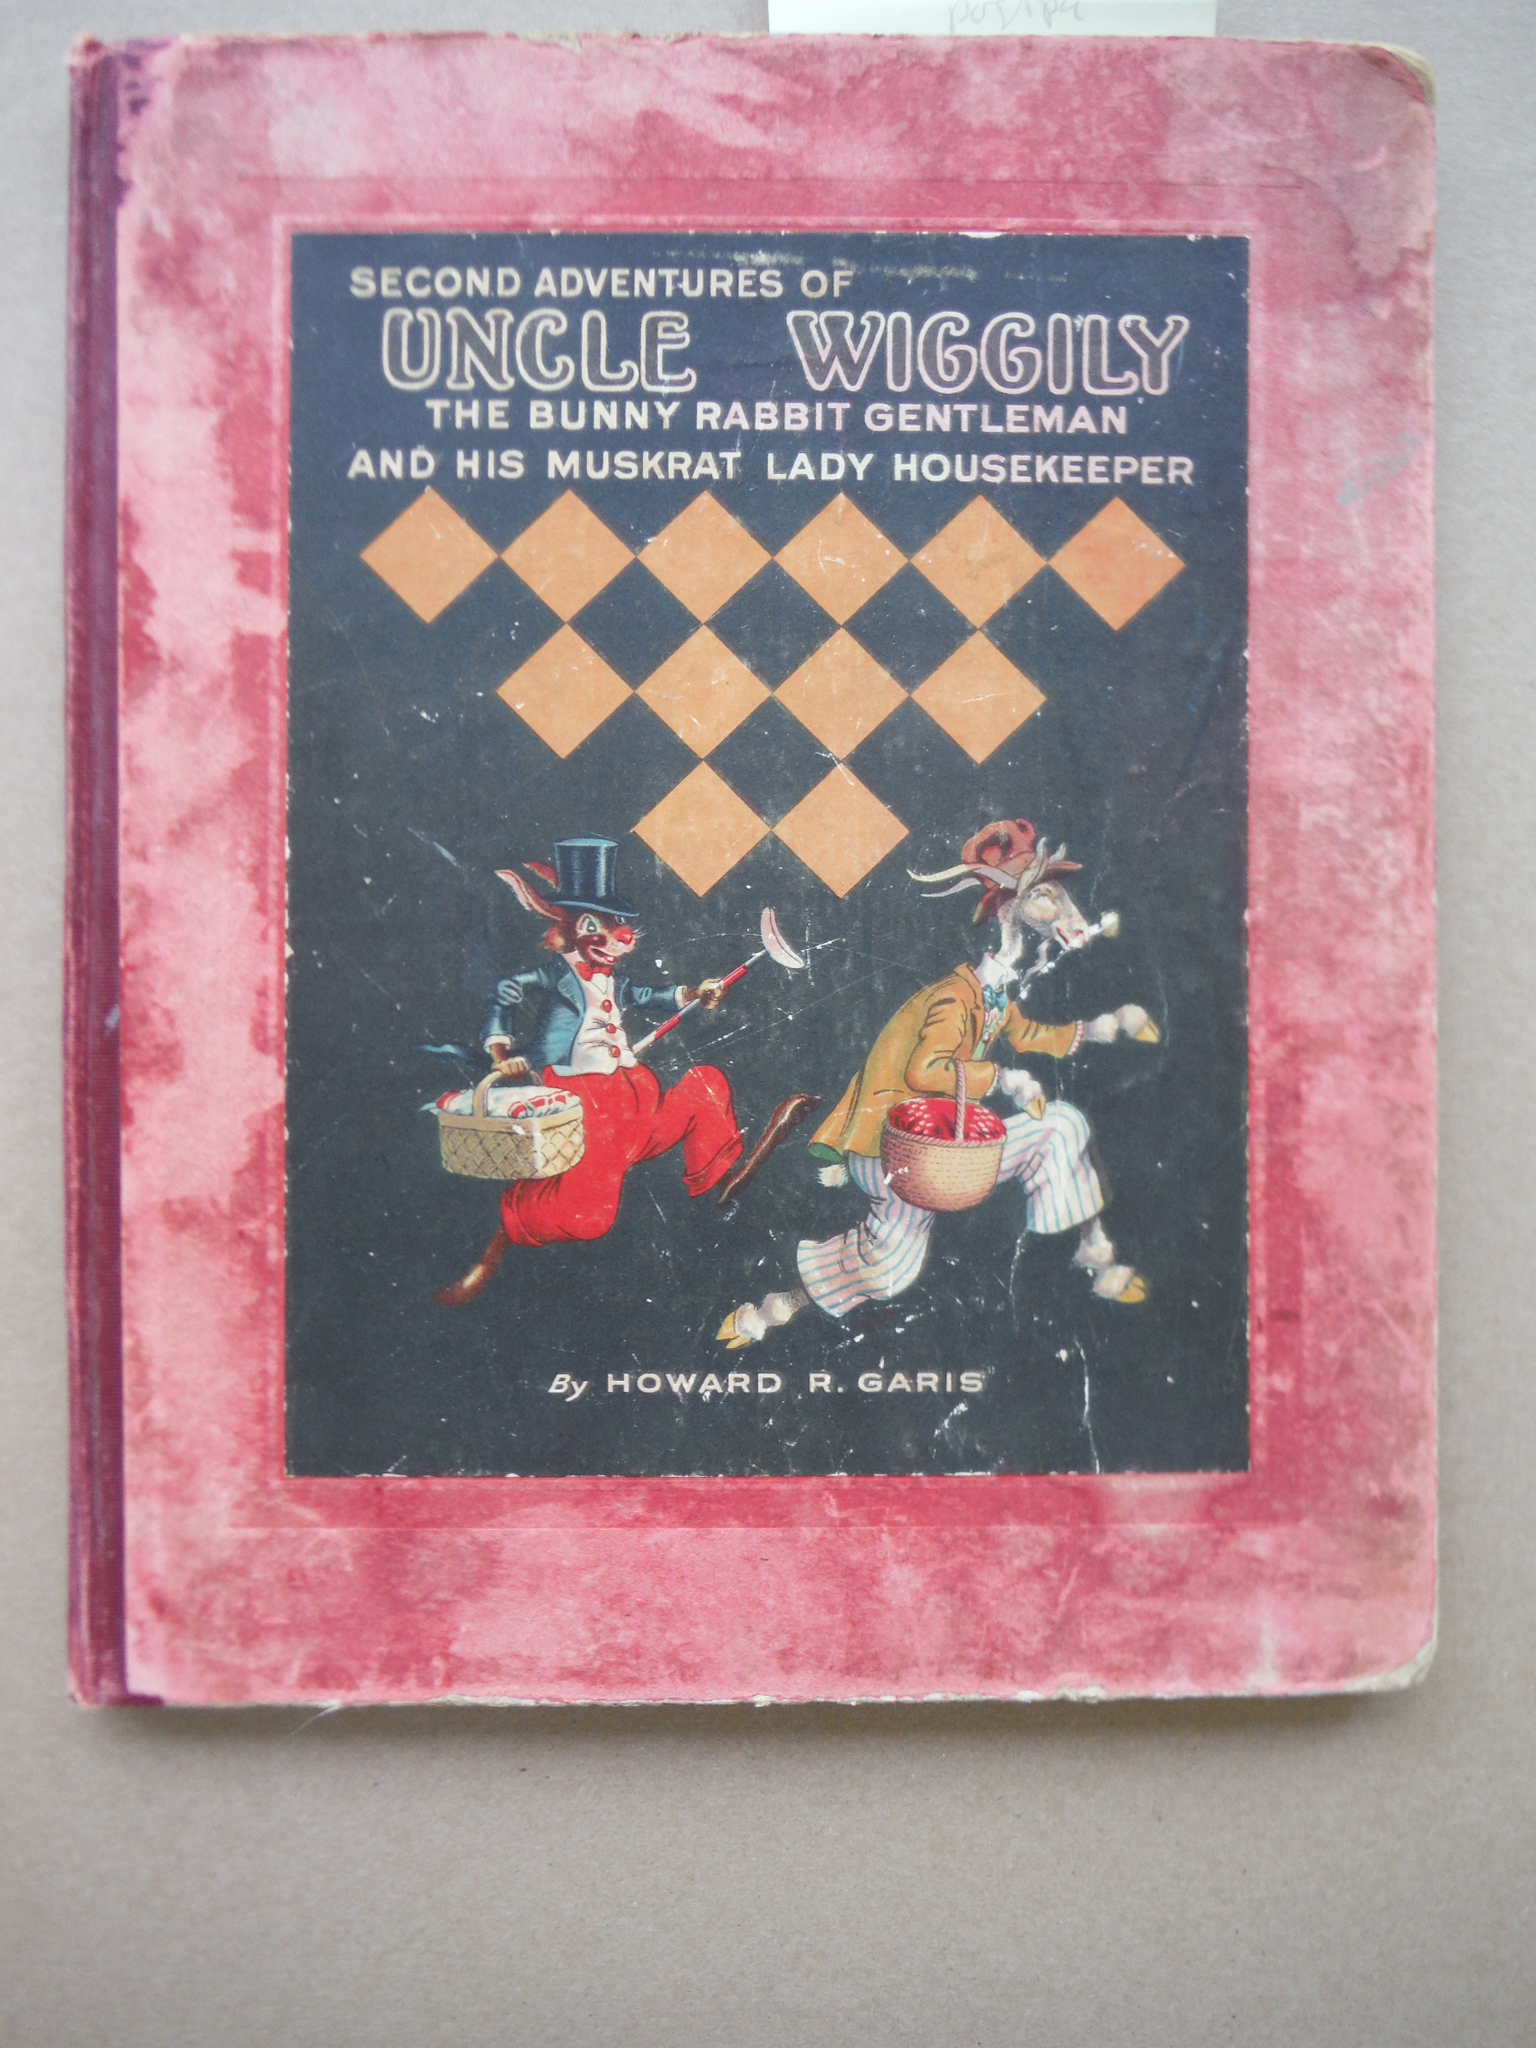 Image 0 of The second adventures of Uncle Wiggily: The bunny rabbit gentleman and his muskr